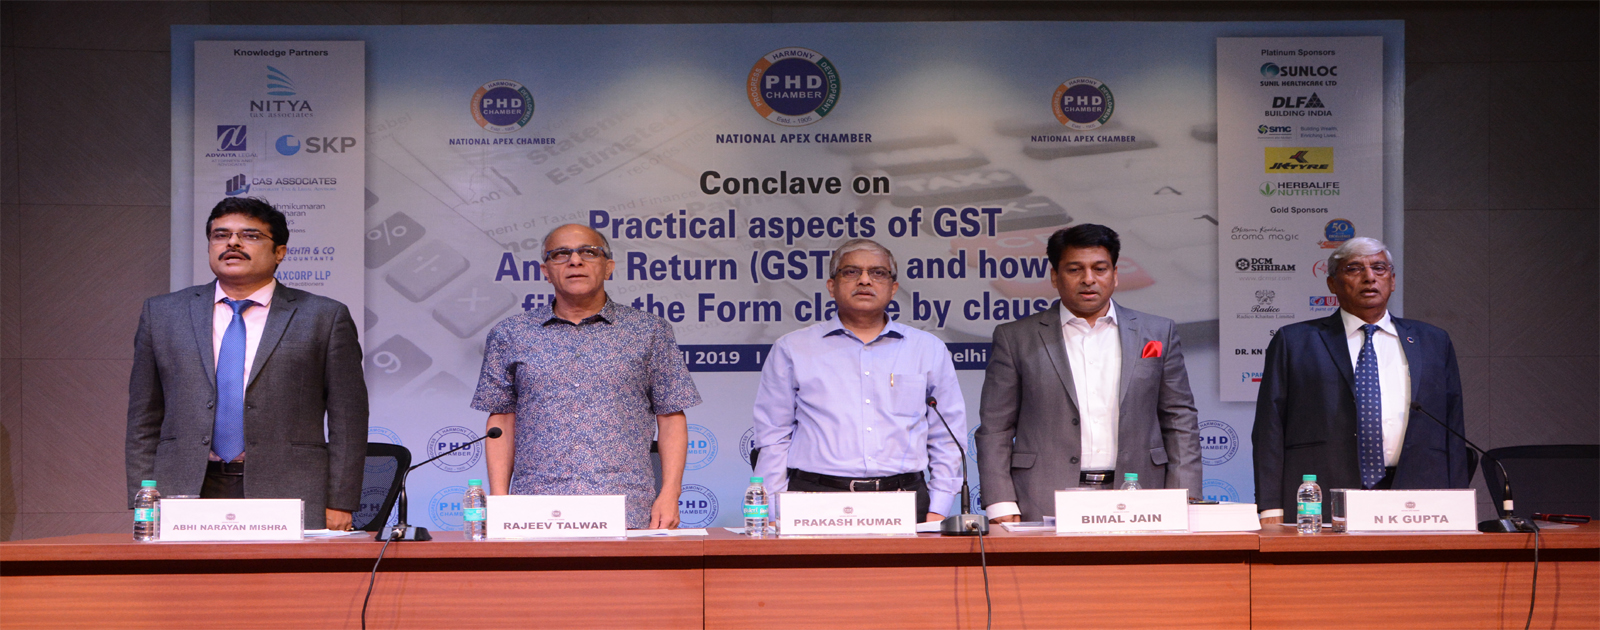 GST Conclave on Practical aspects of GST Annual Return (GSTR-9) and how to fill up the Form clause by clause